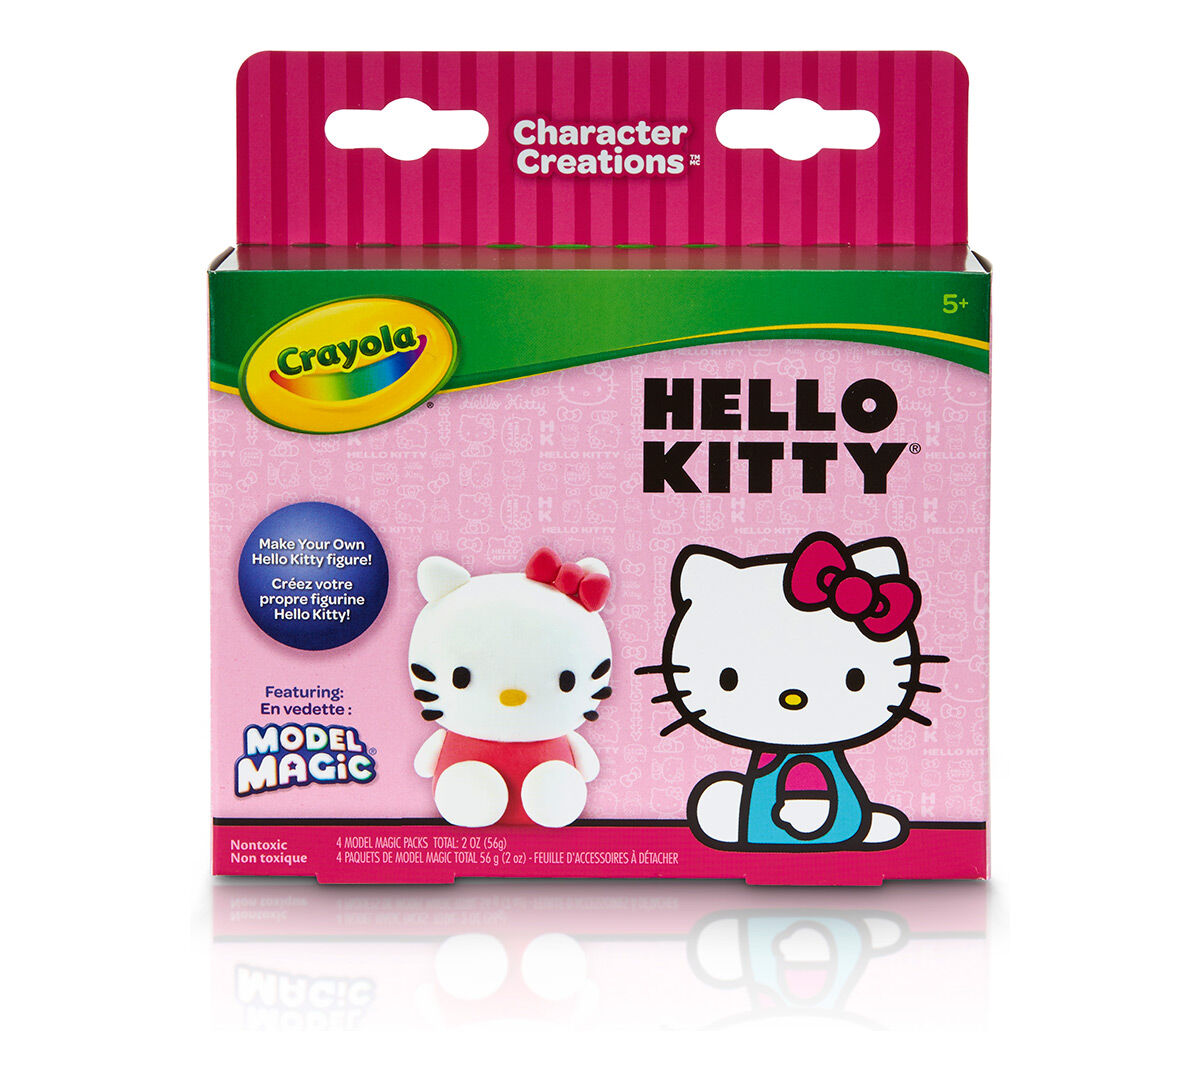 crayola model magic character creations hello kitty - Crayola Sign